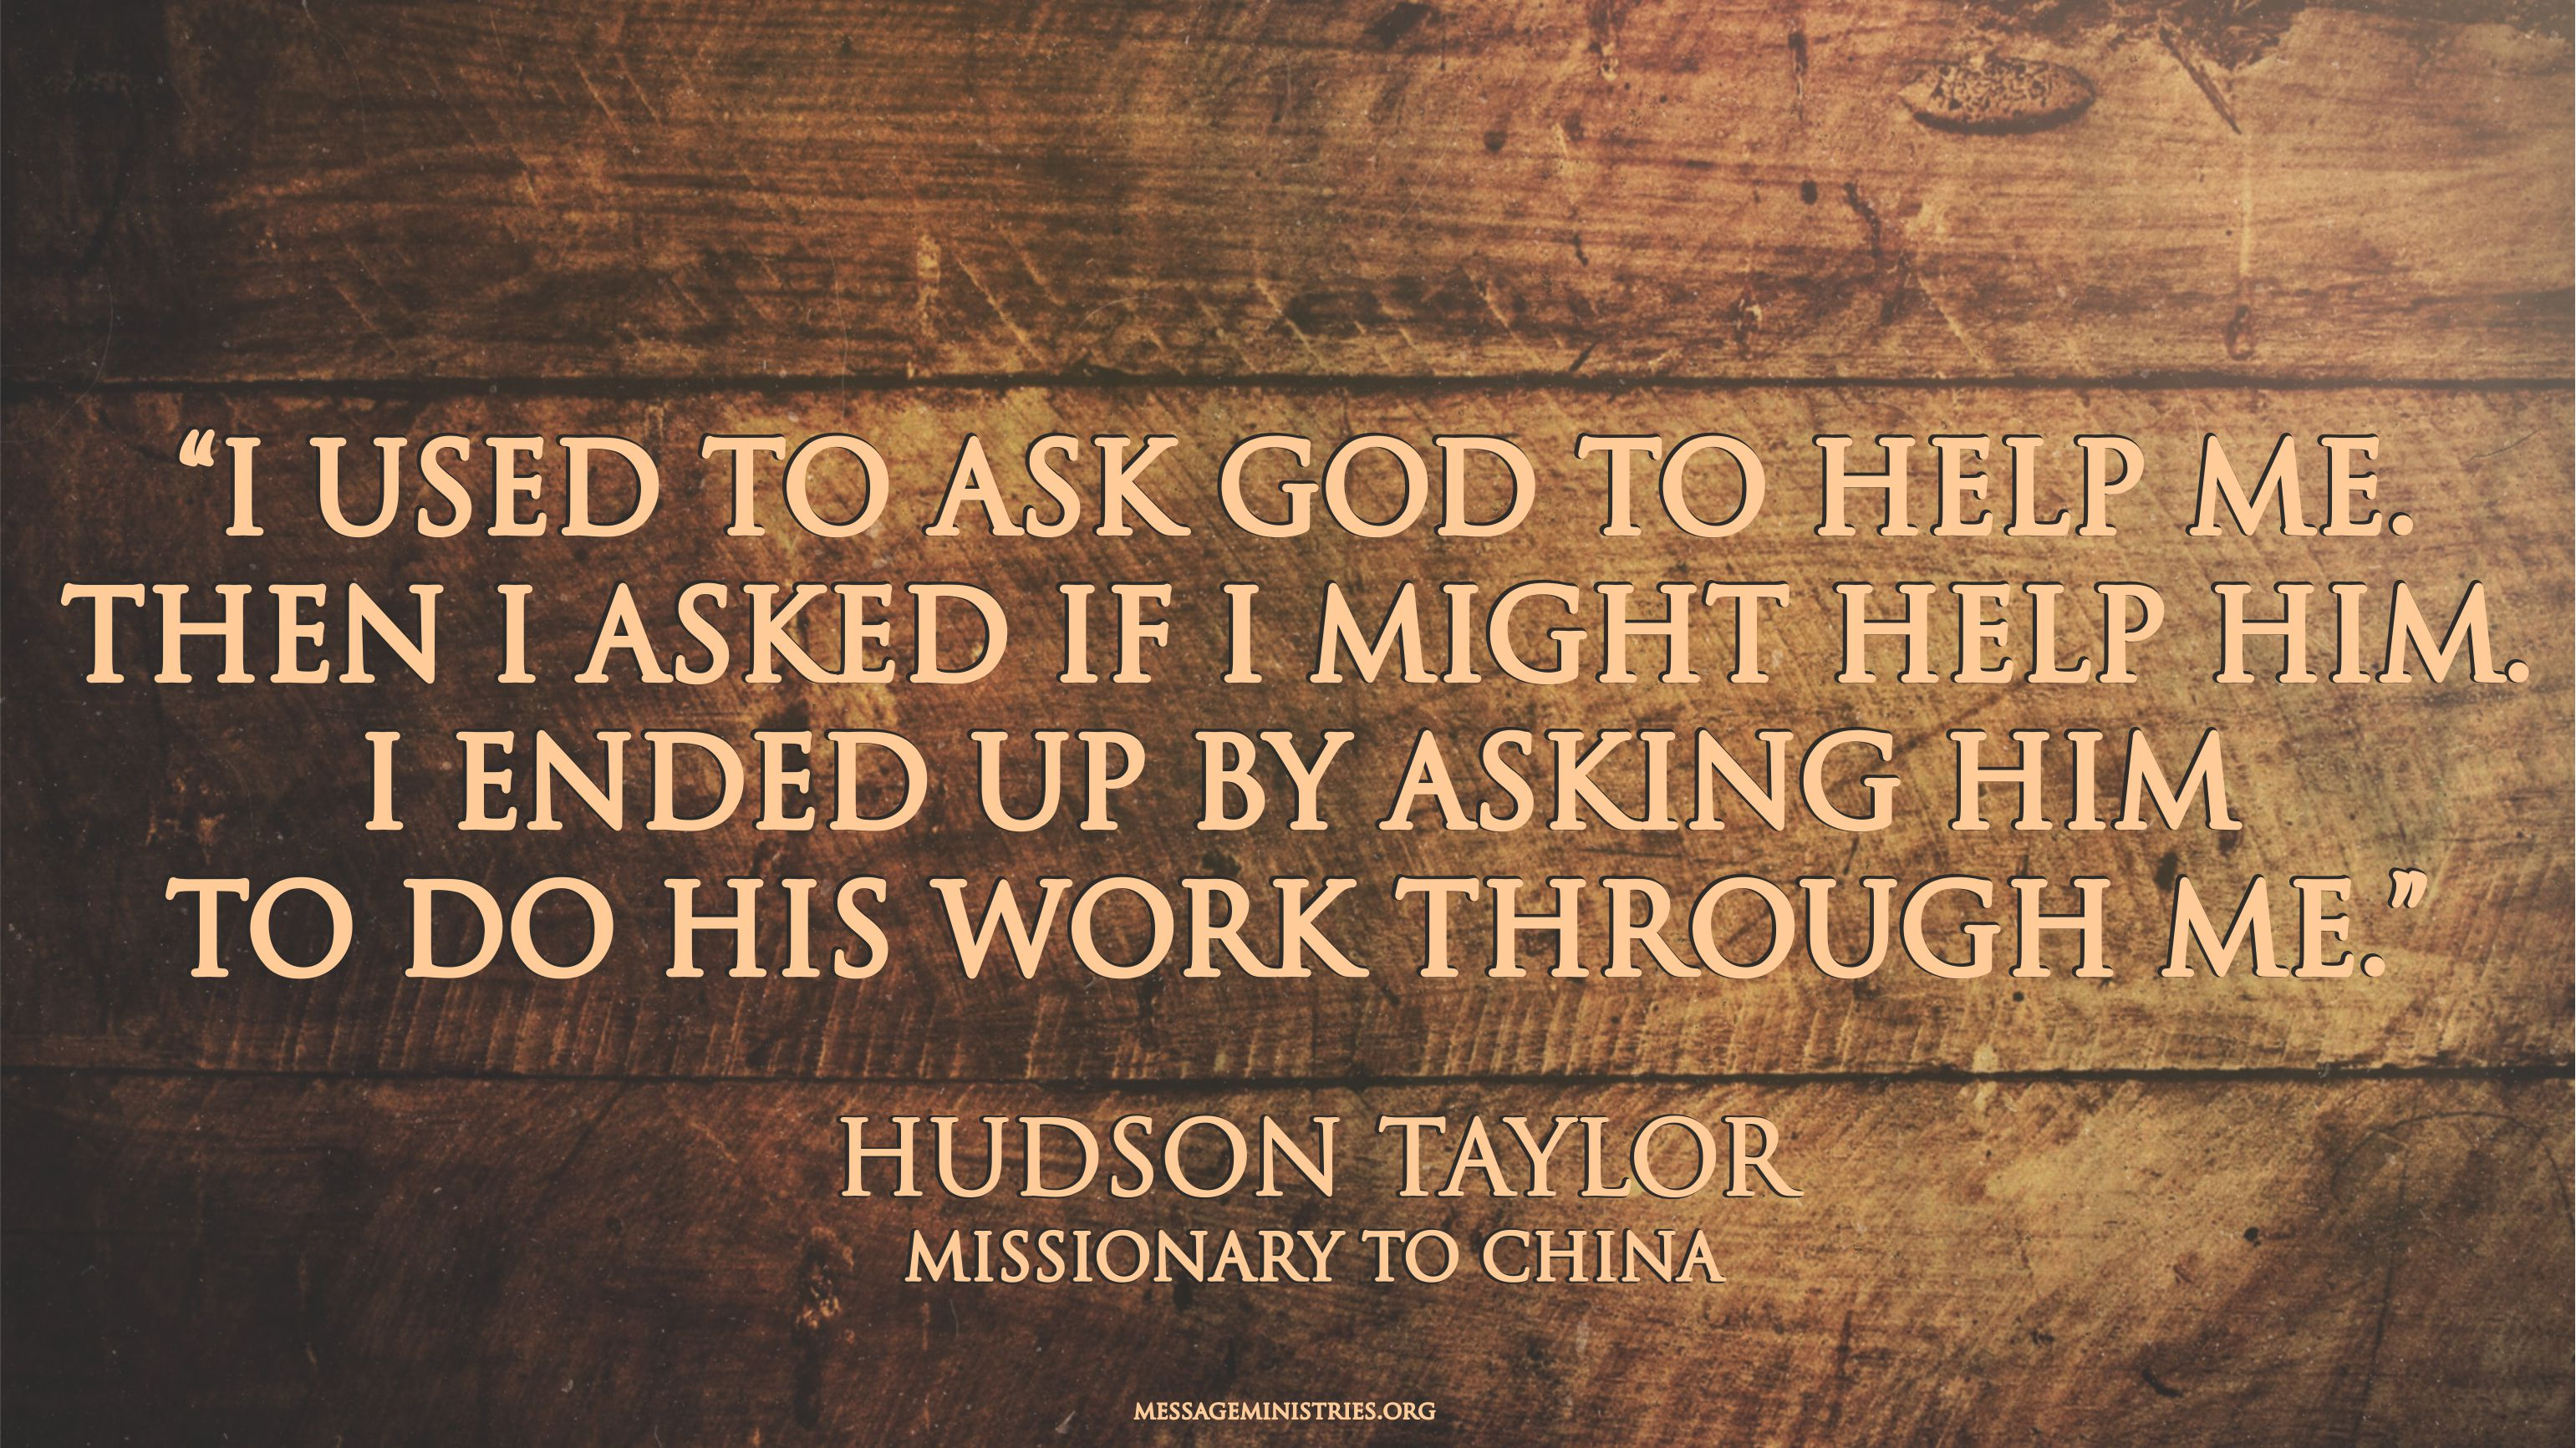 Hudson Taylor - I used to ask God to